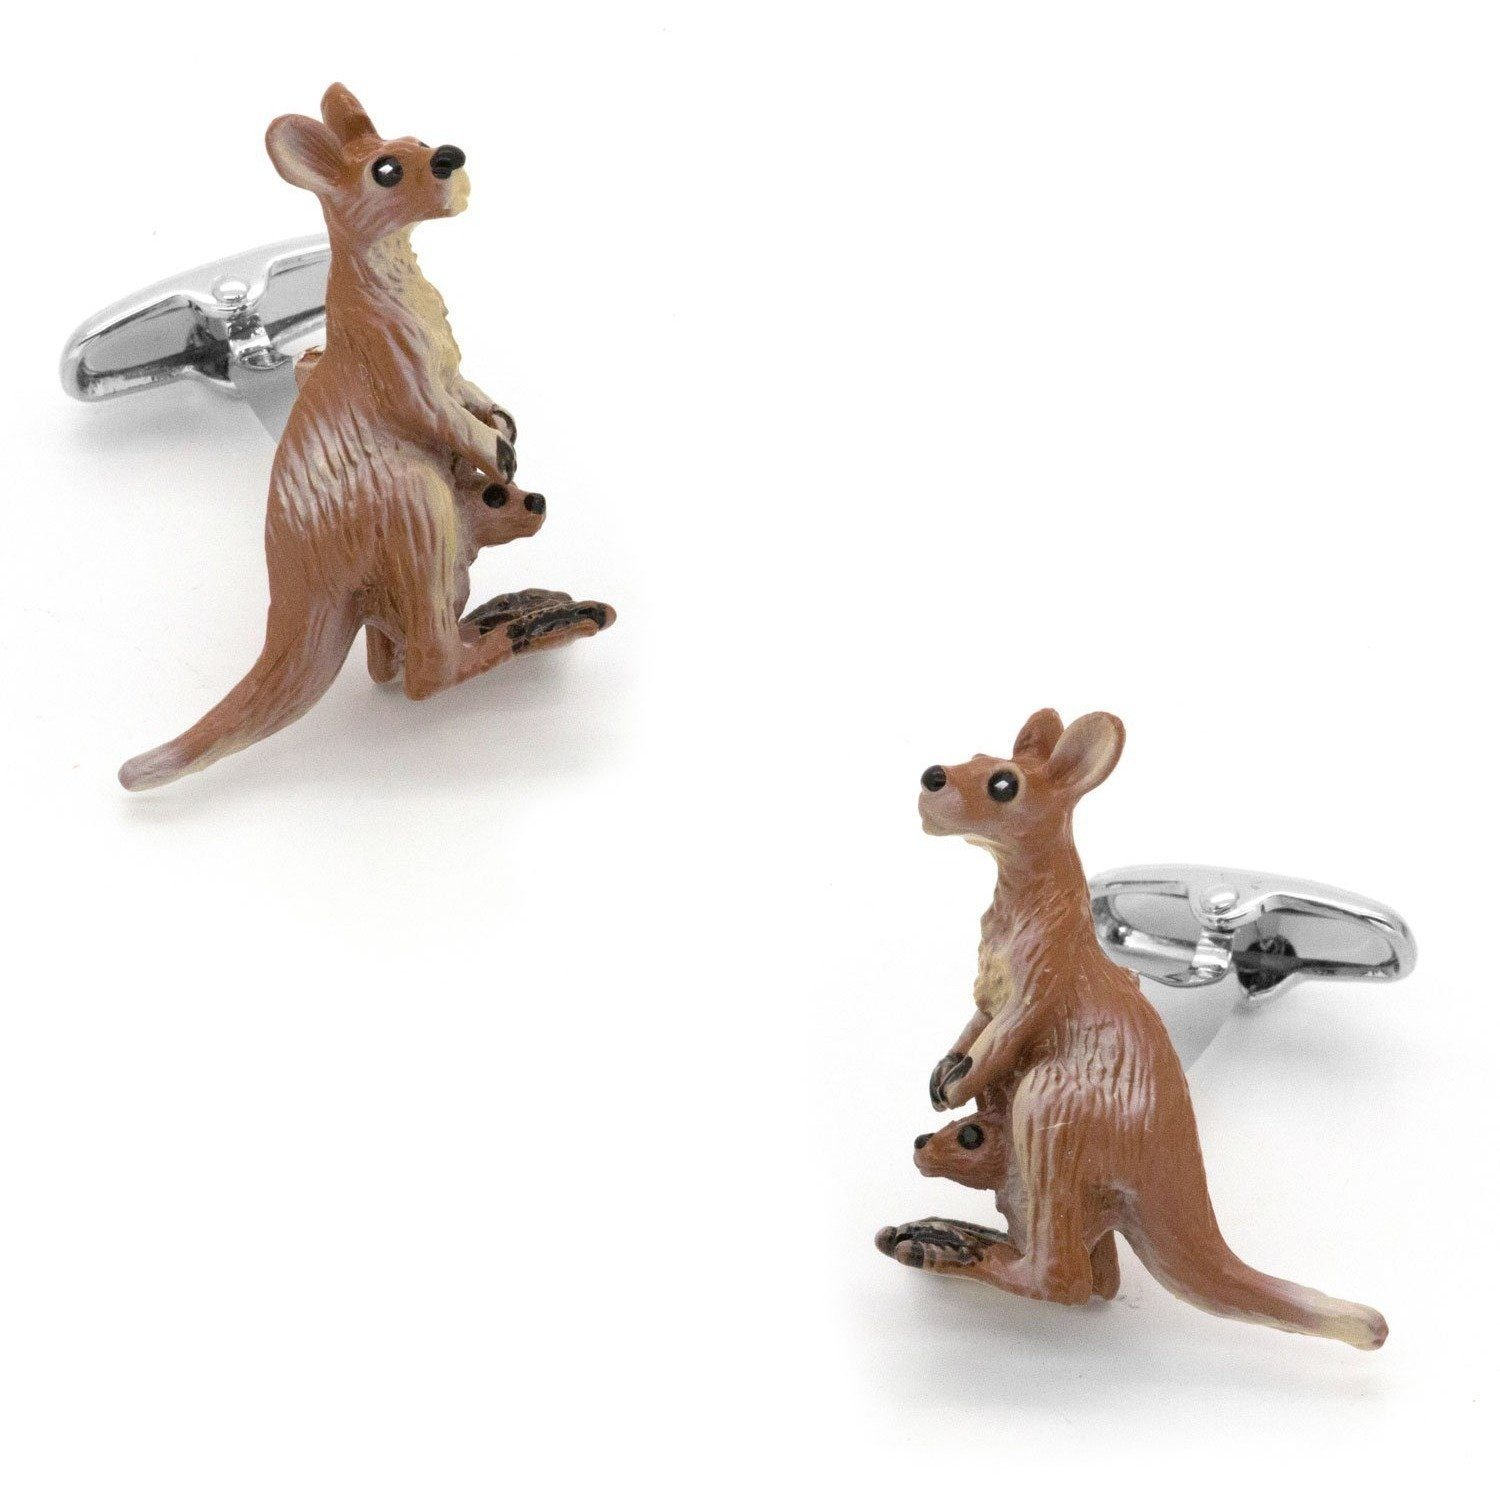 Colour Kangaroo Cufflinks, Novelty Cufflinks, Cuffed.com.au, CL7055, $29.00